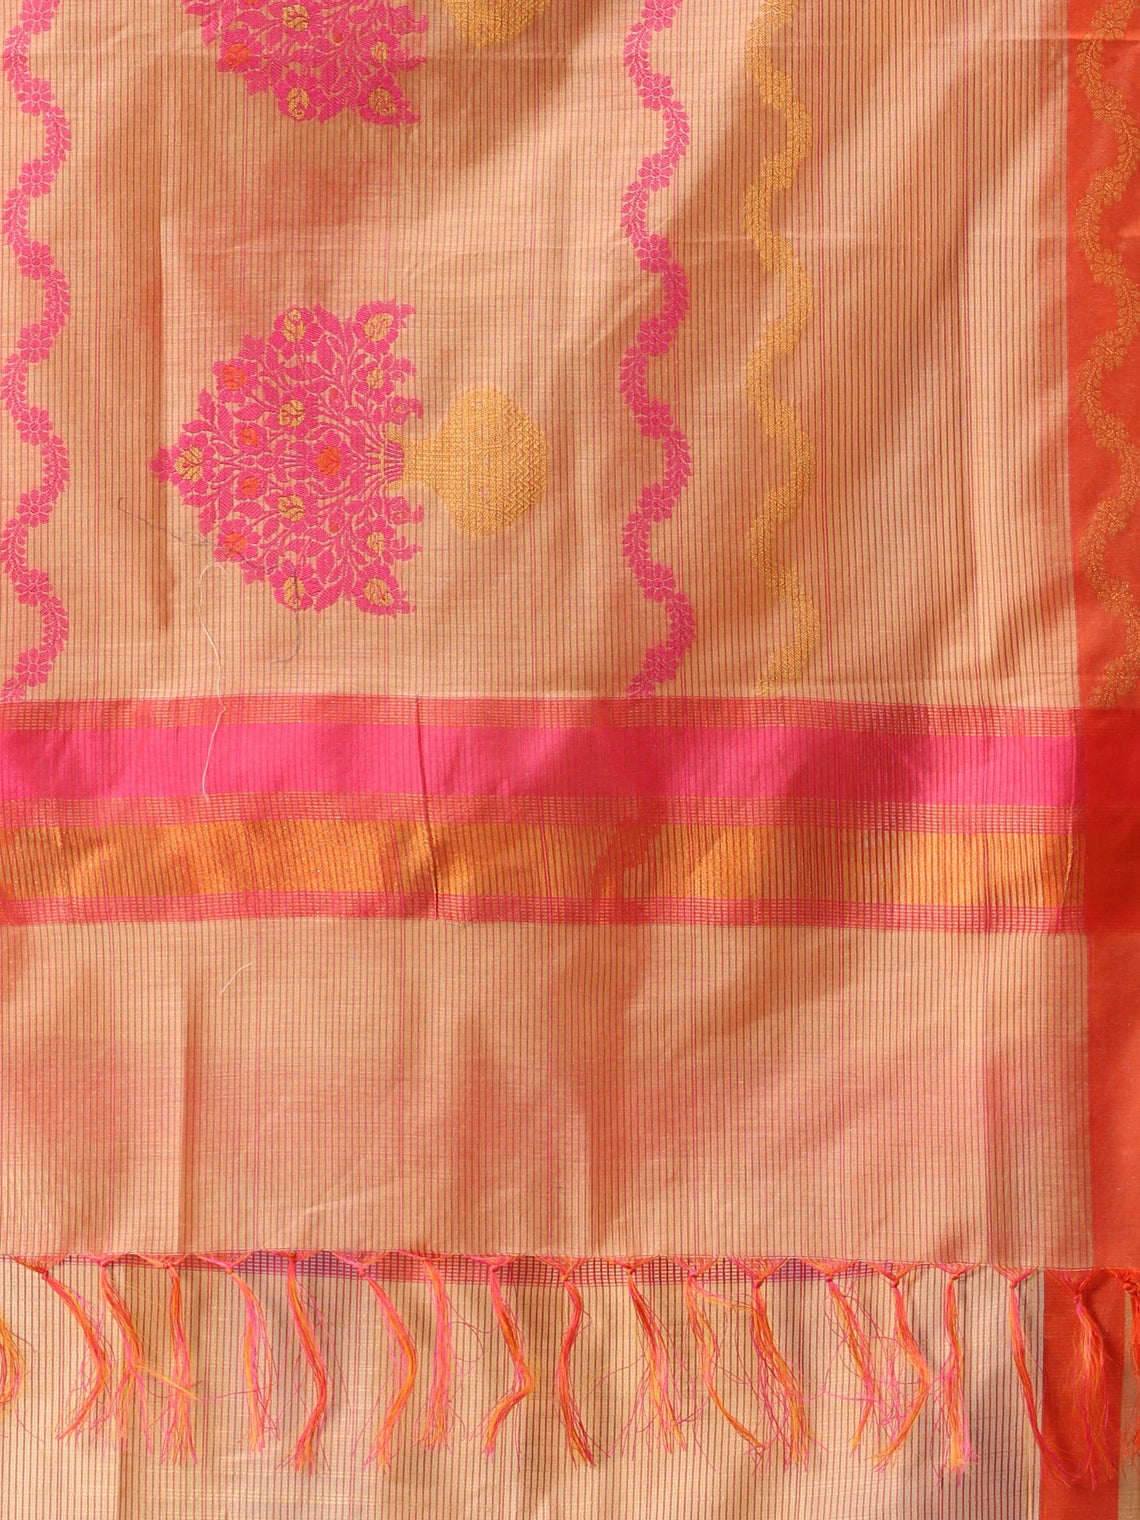 Banarasi Chanderi Dupatta With Resham Work - Pink Beige & Gold - D04170821